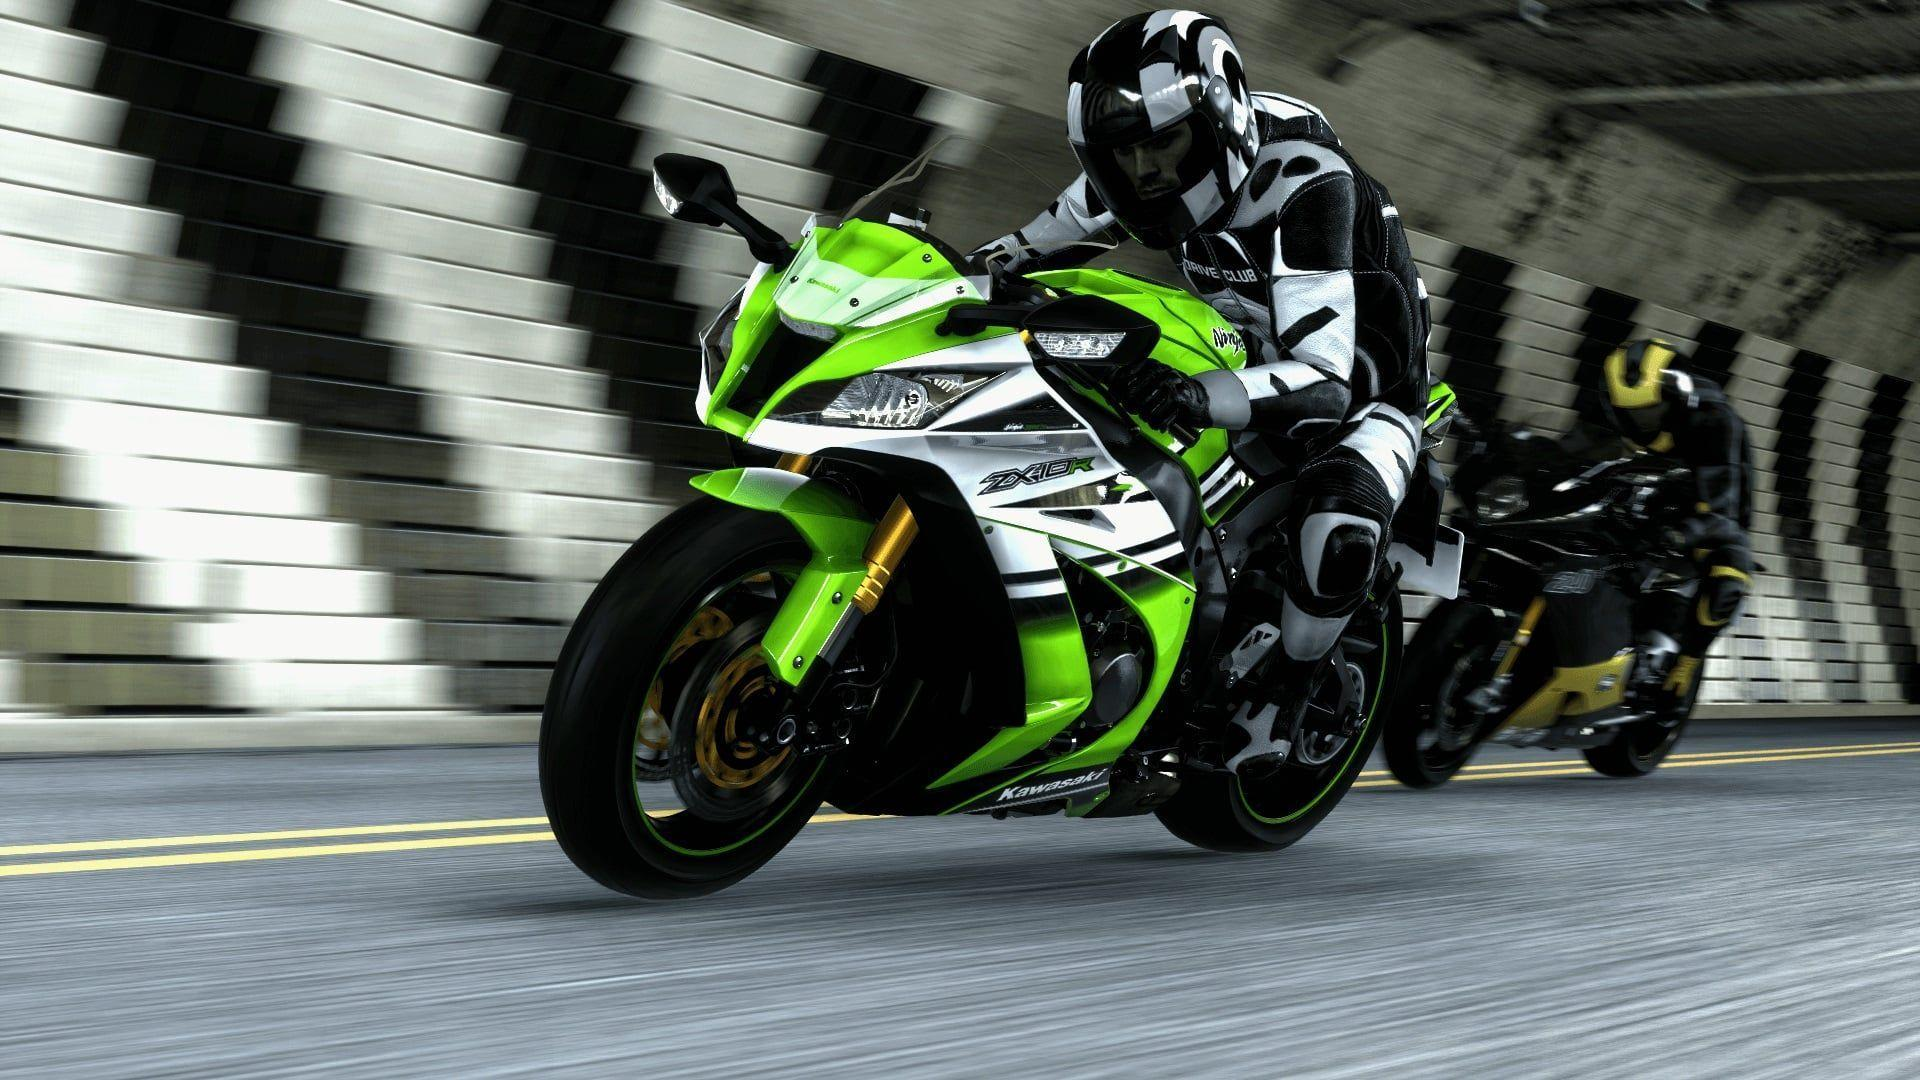 2016 Kawasaki Ninja 250R Wallpapers